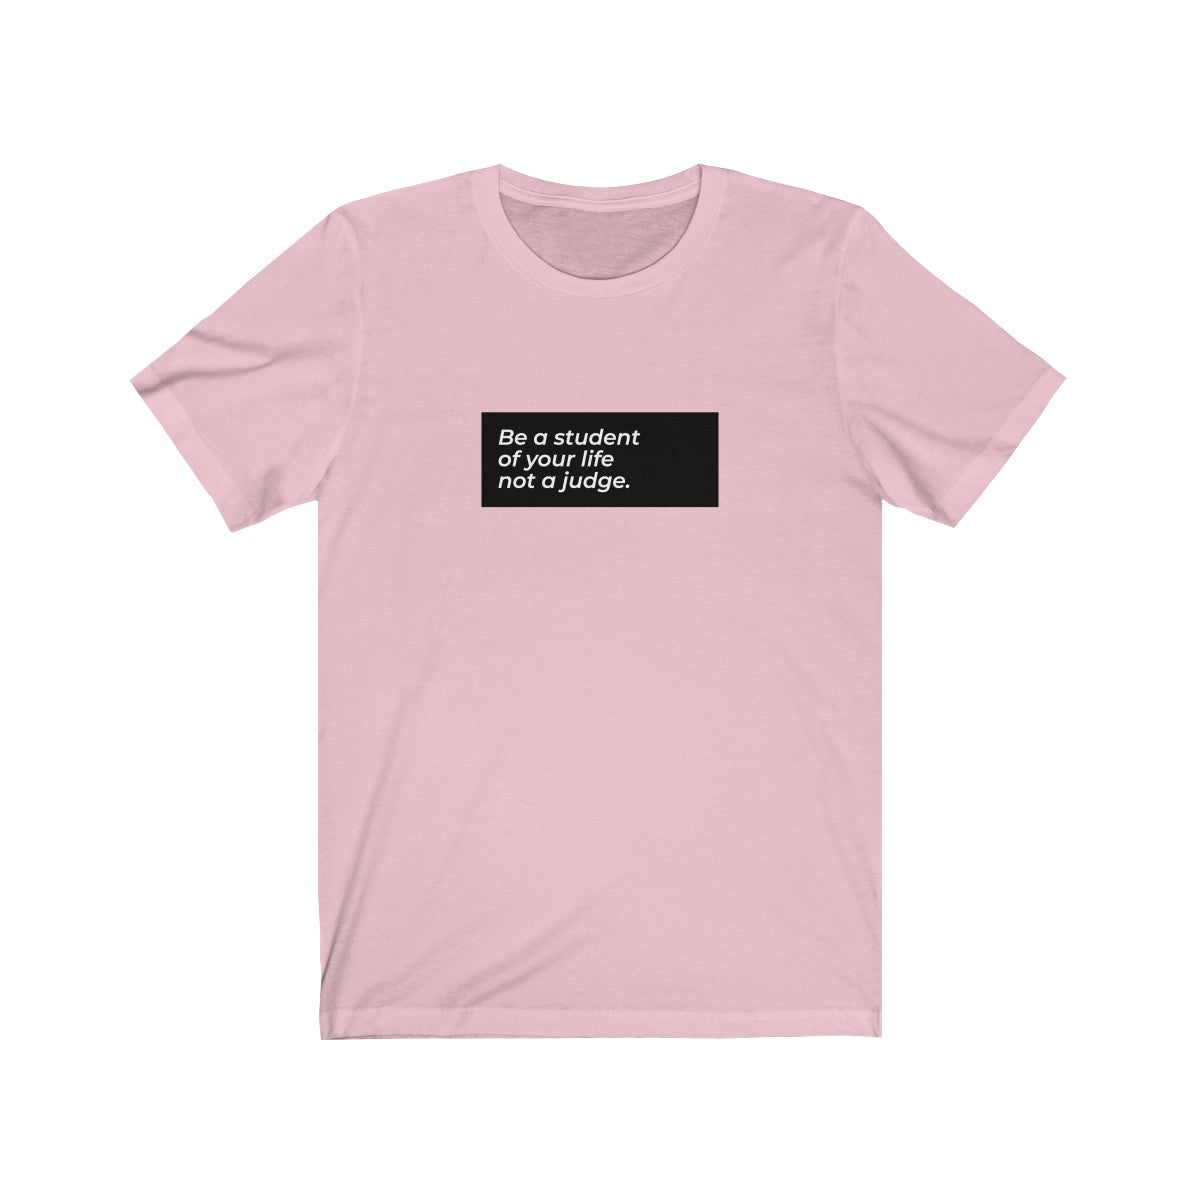 Be A Student Of Your Life And Not A Judge Unisex Jersey Short Sleeve Tee - LIGHT